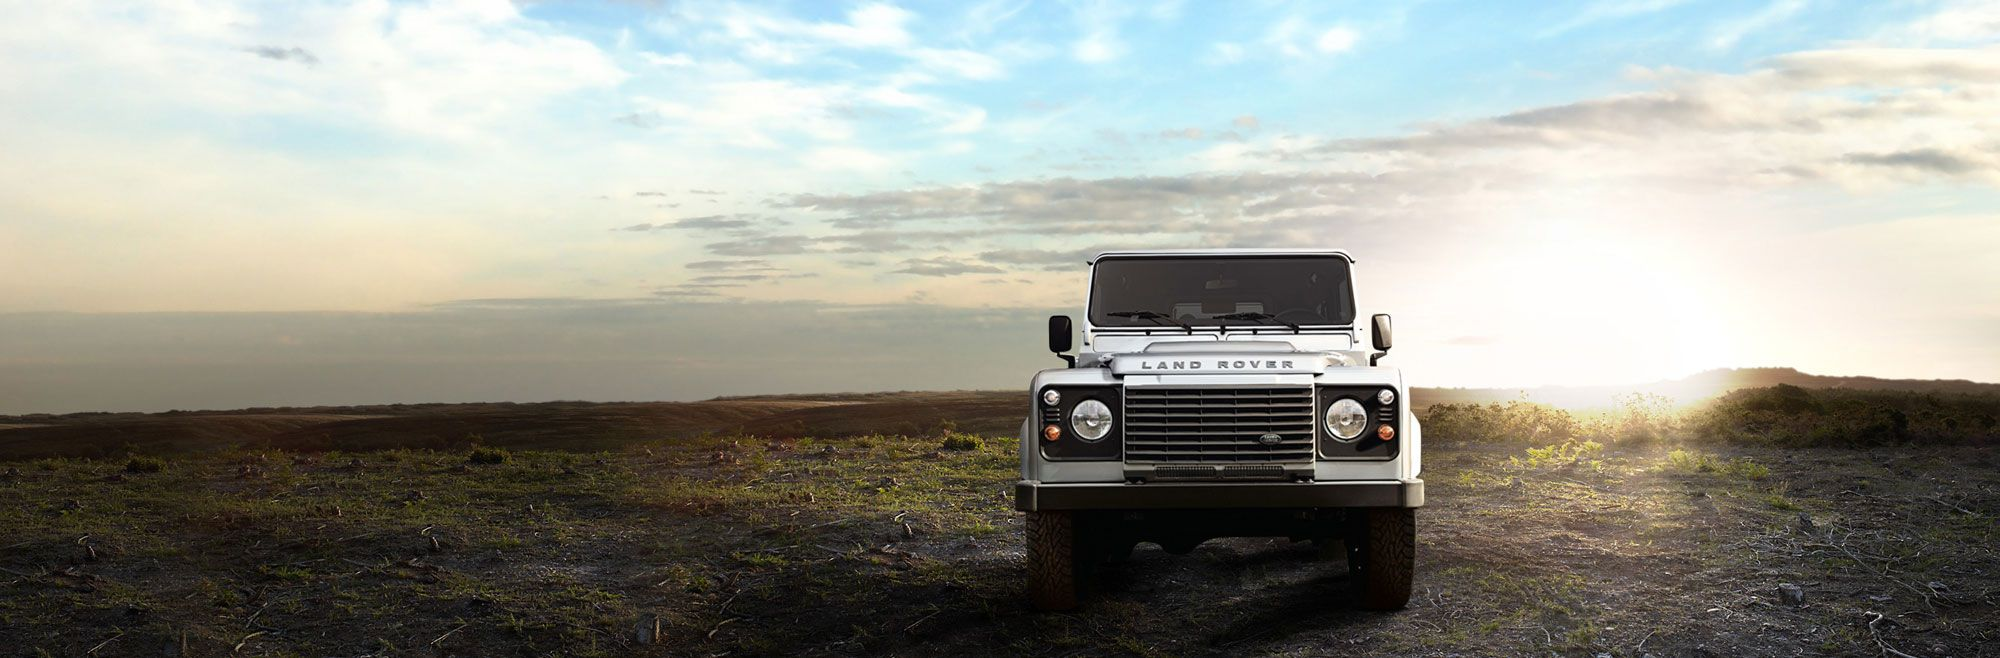 land rover - markötter automobile